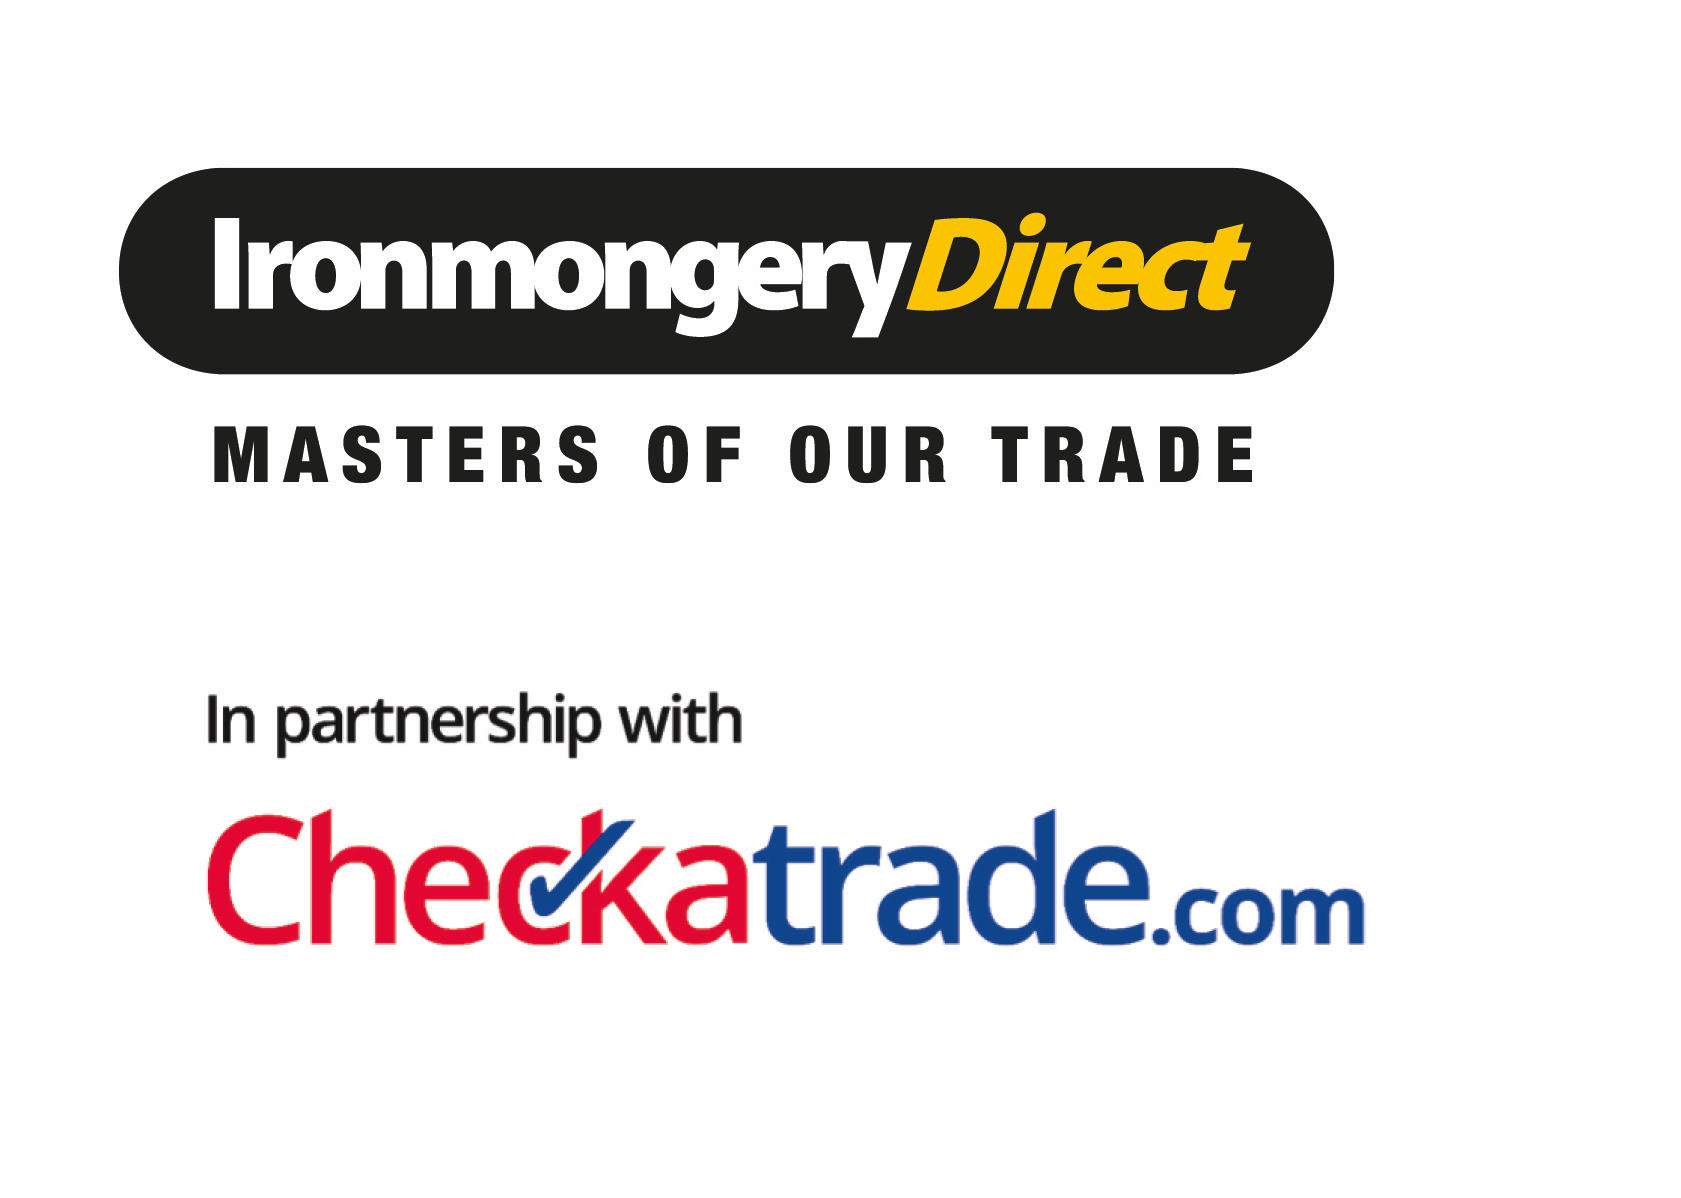 IronmongeryDirect partners with Checkatrade